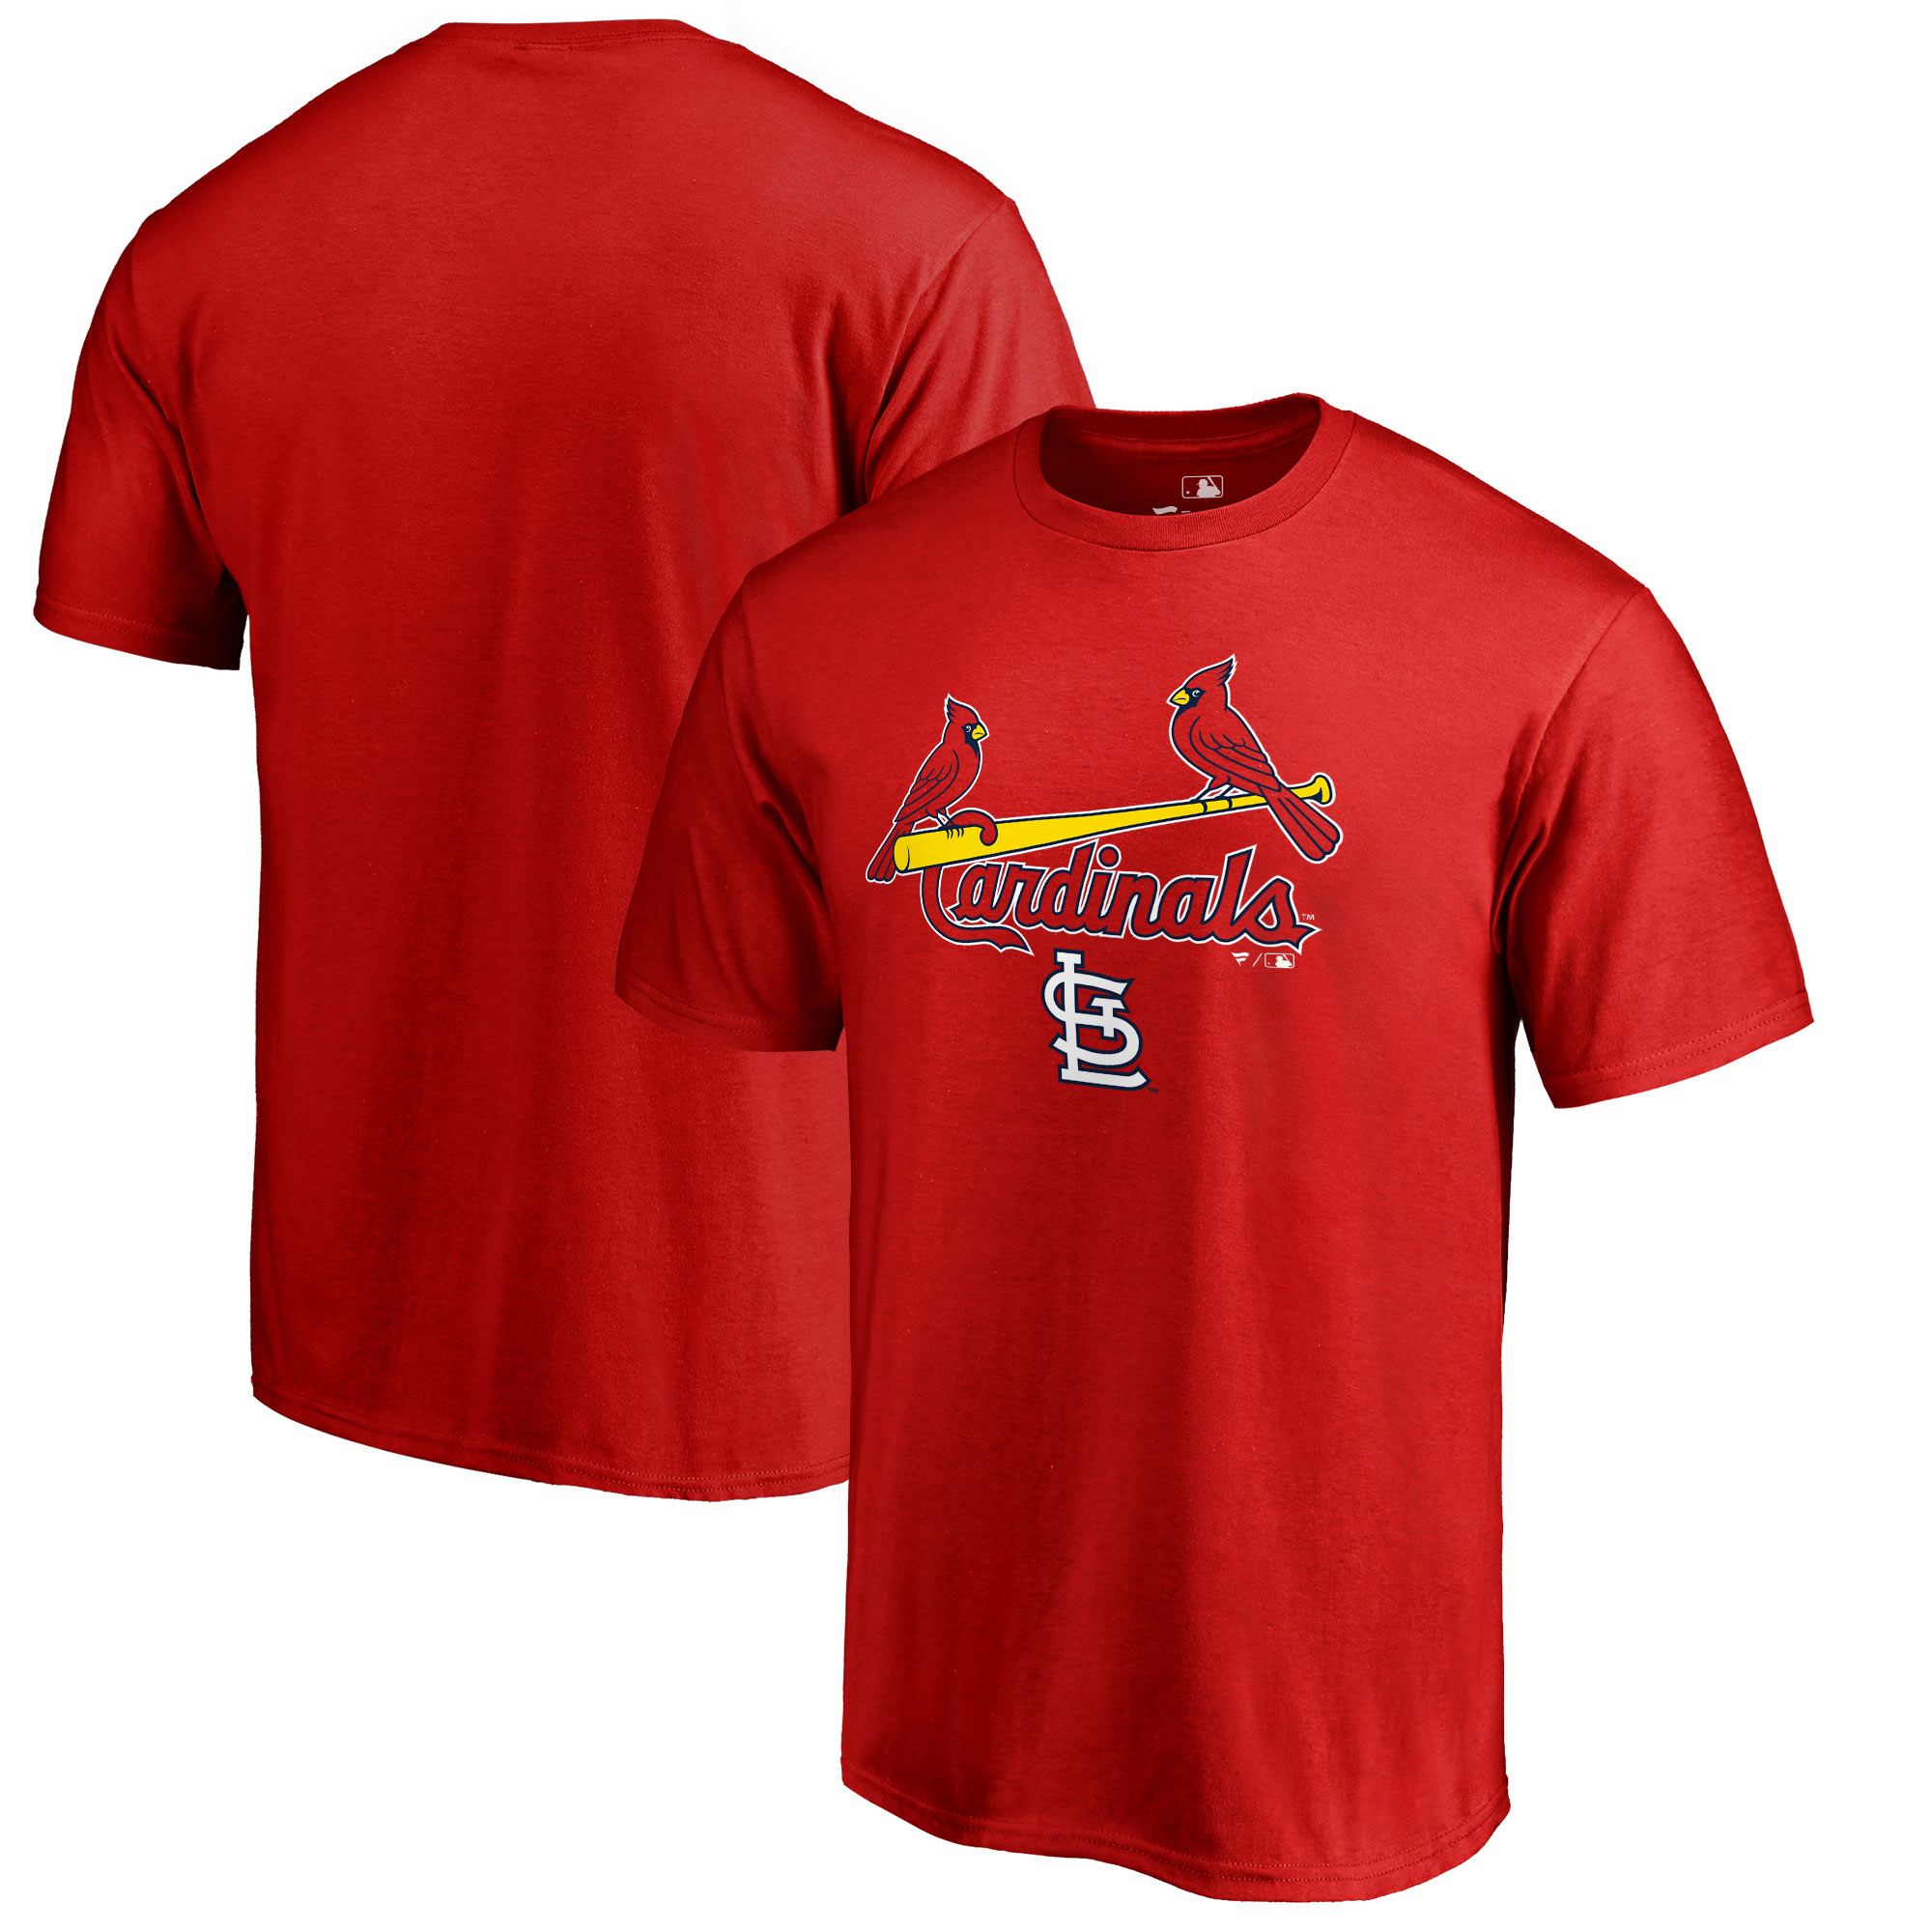 St. Louis Cardinals Fanatics Branded Big & Tall Team Lockup T-Shirt - Red